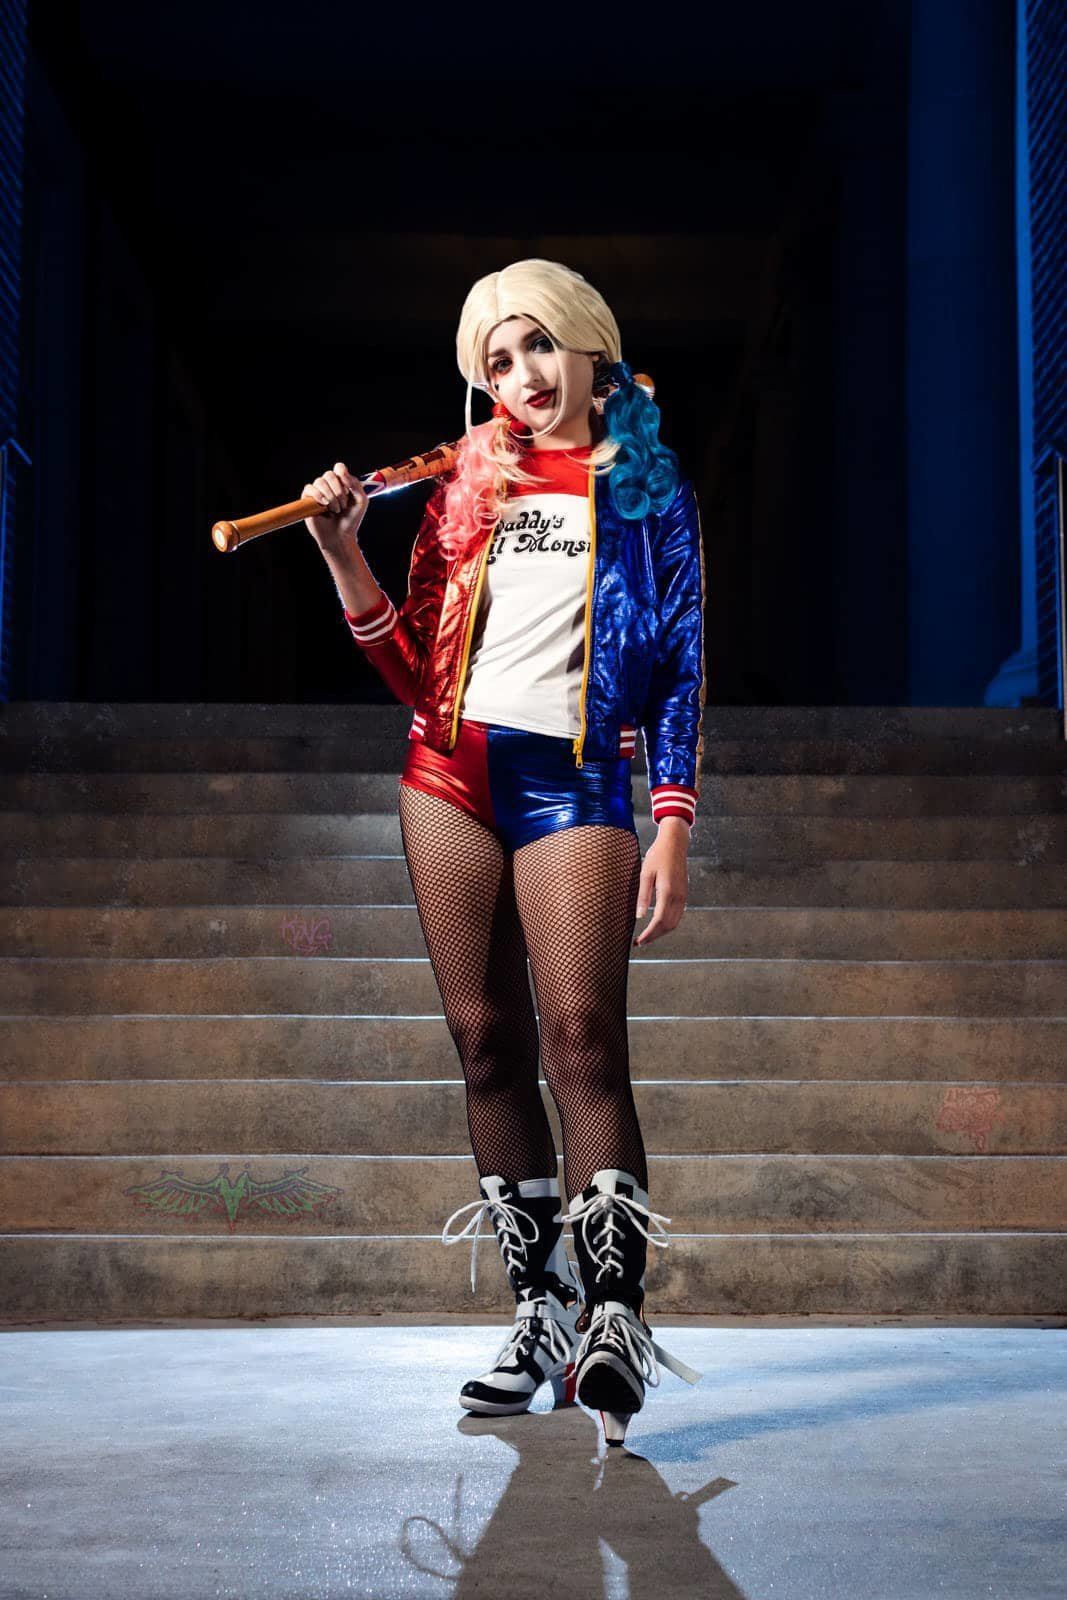 portrait of harley quinn cosplay with bat standing in front of steps Alpharetta